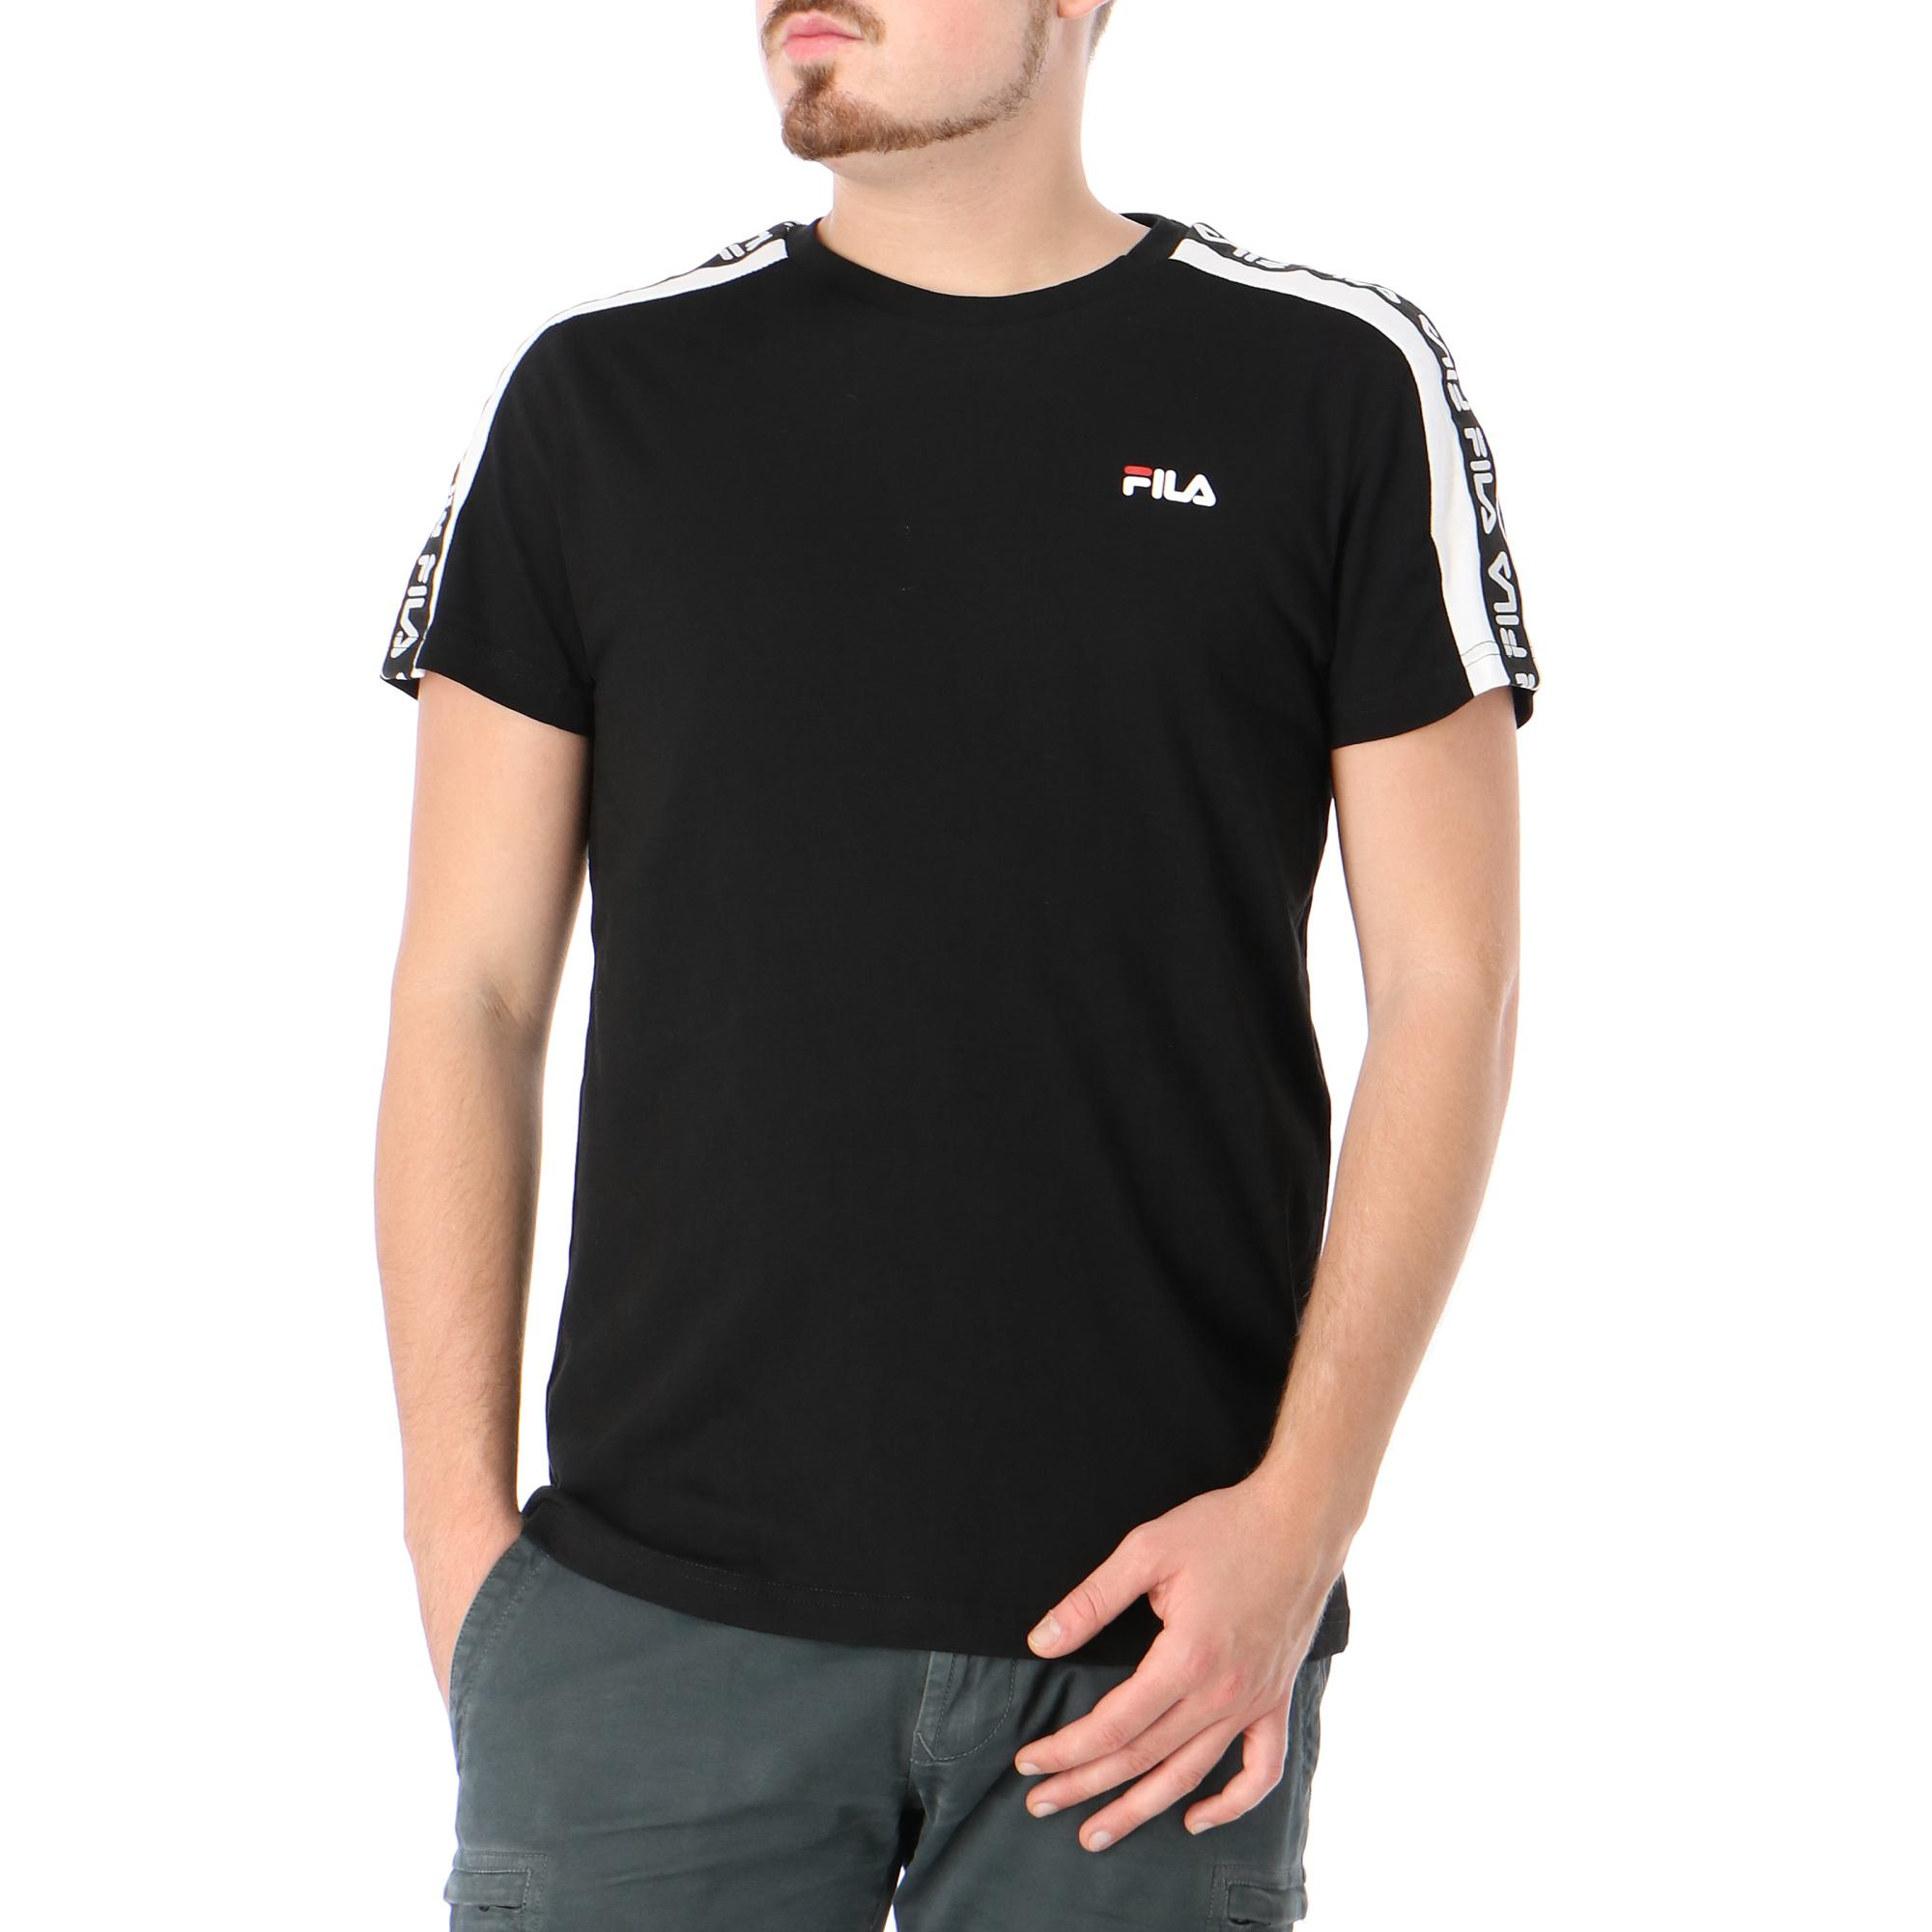 Fila Thanos Tee Black bright white